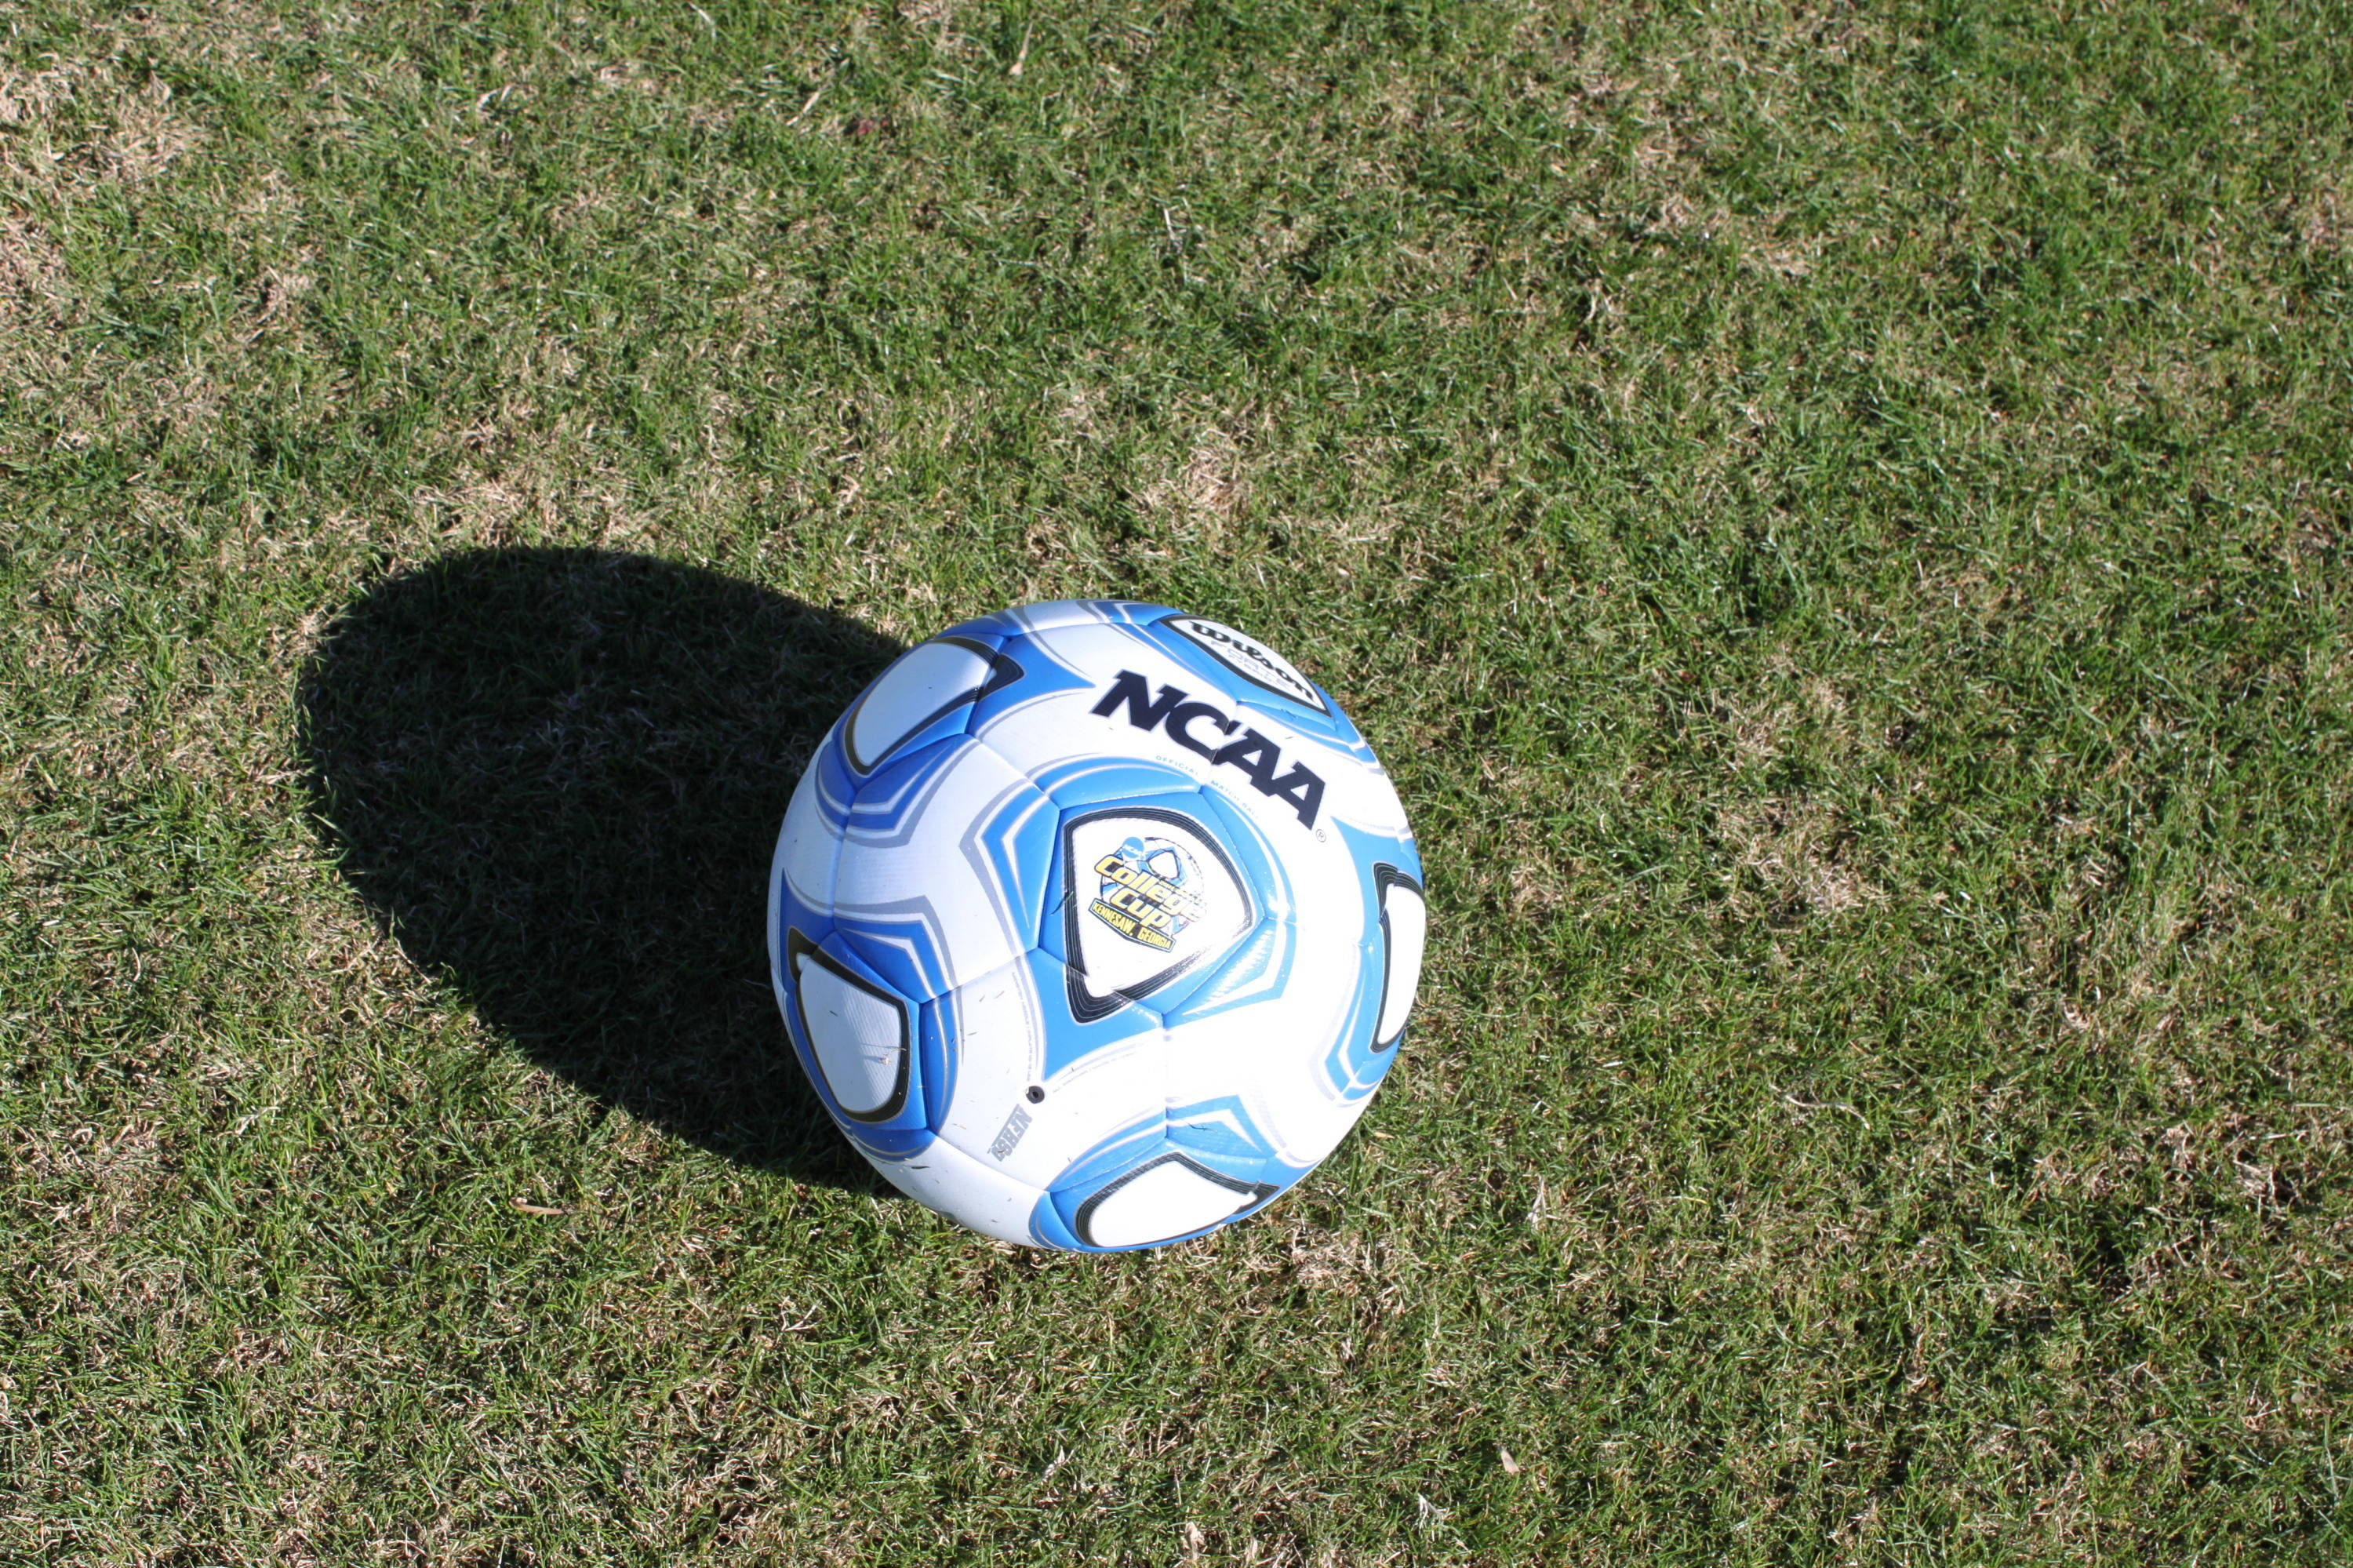 The official ball of the 2011 Women's College Cup